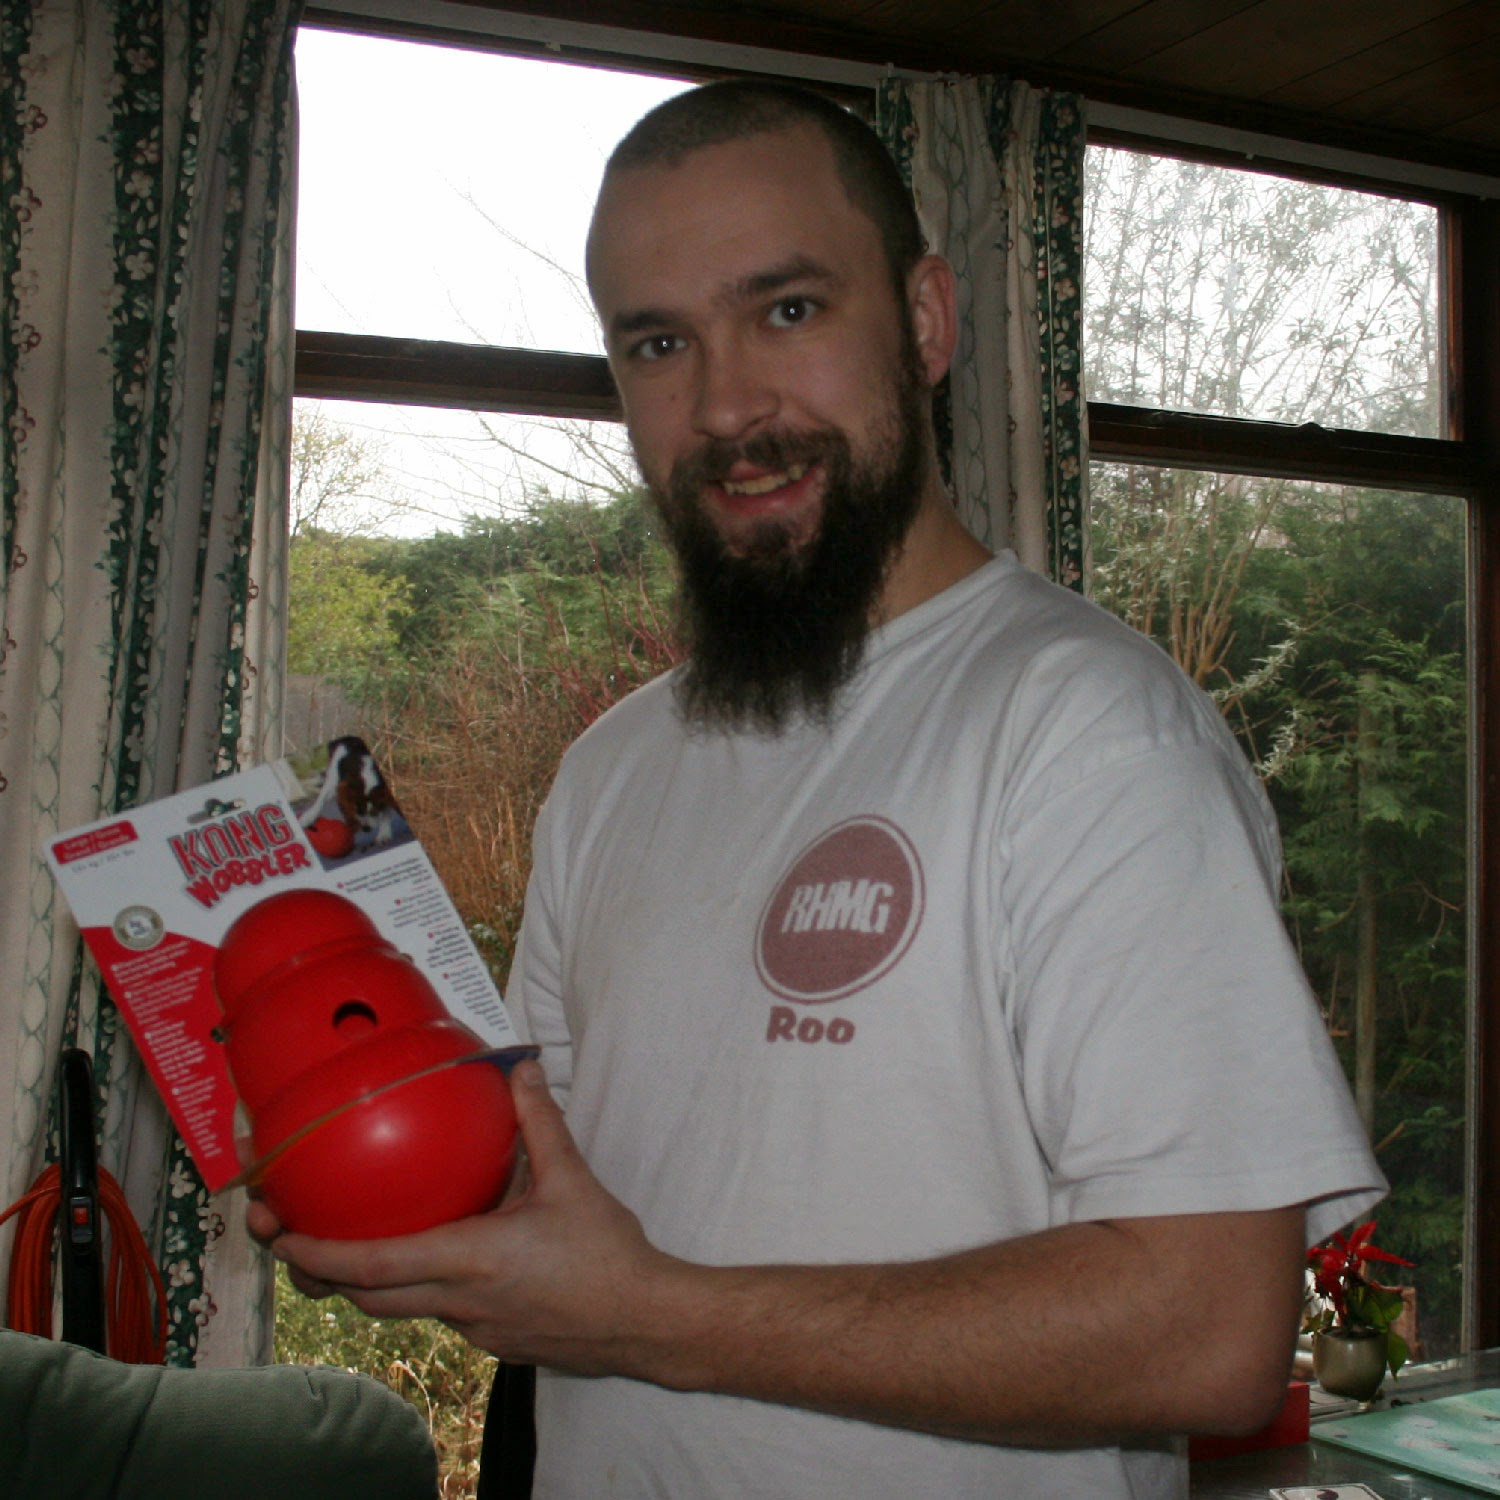 The Kong Wobbler, bright red and huge